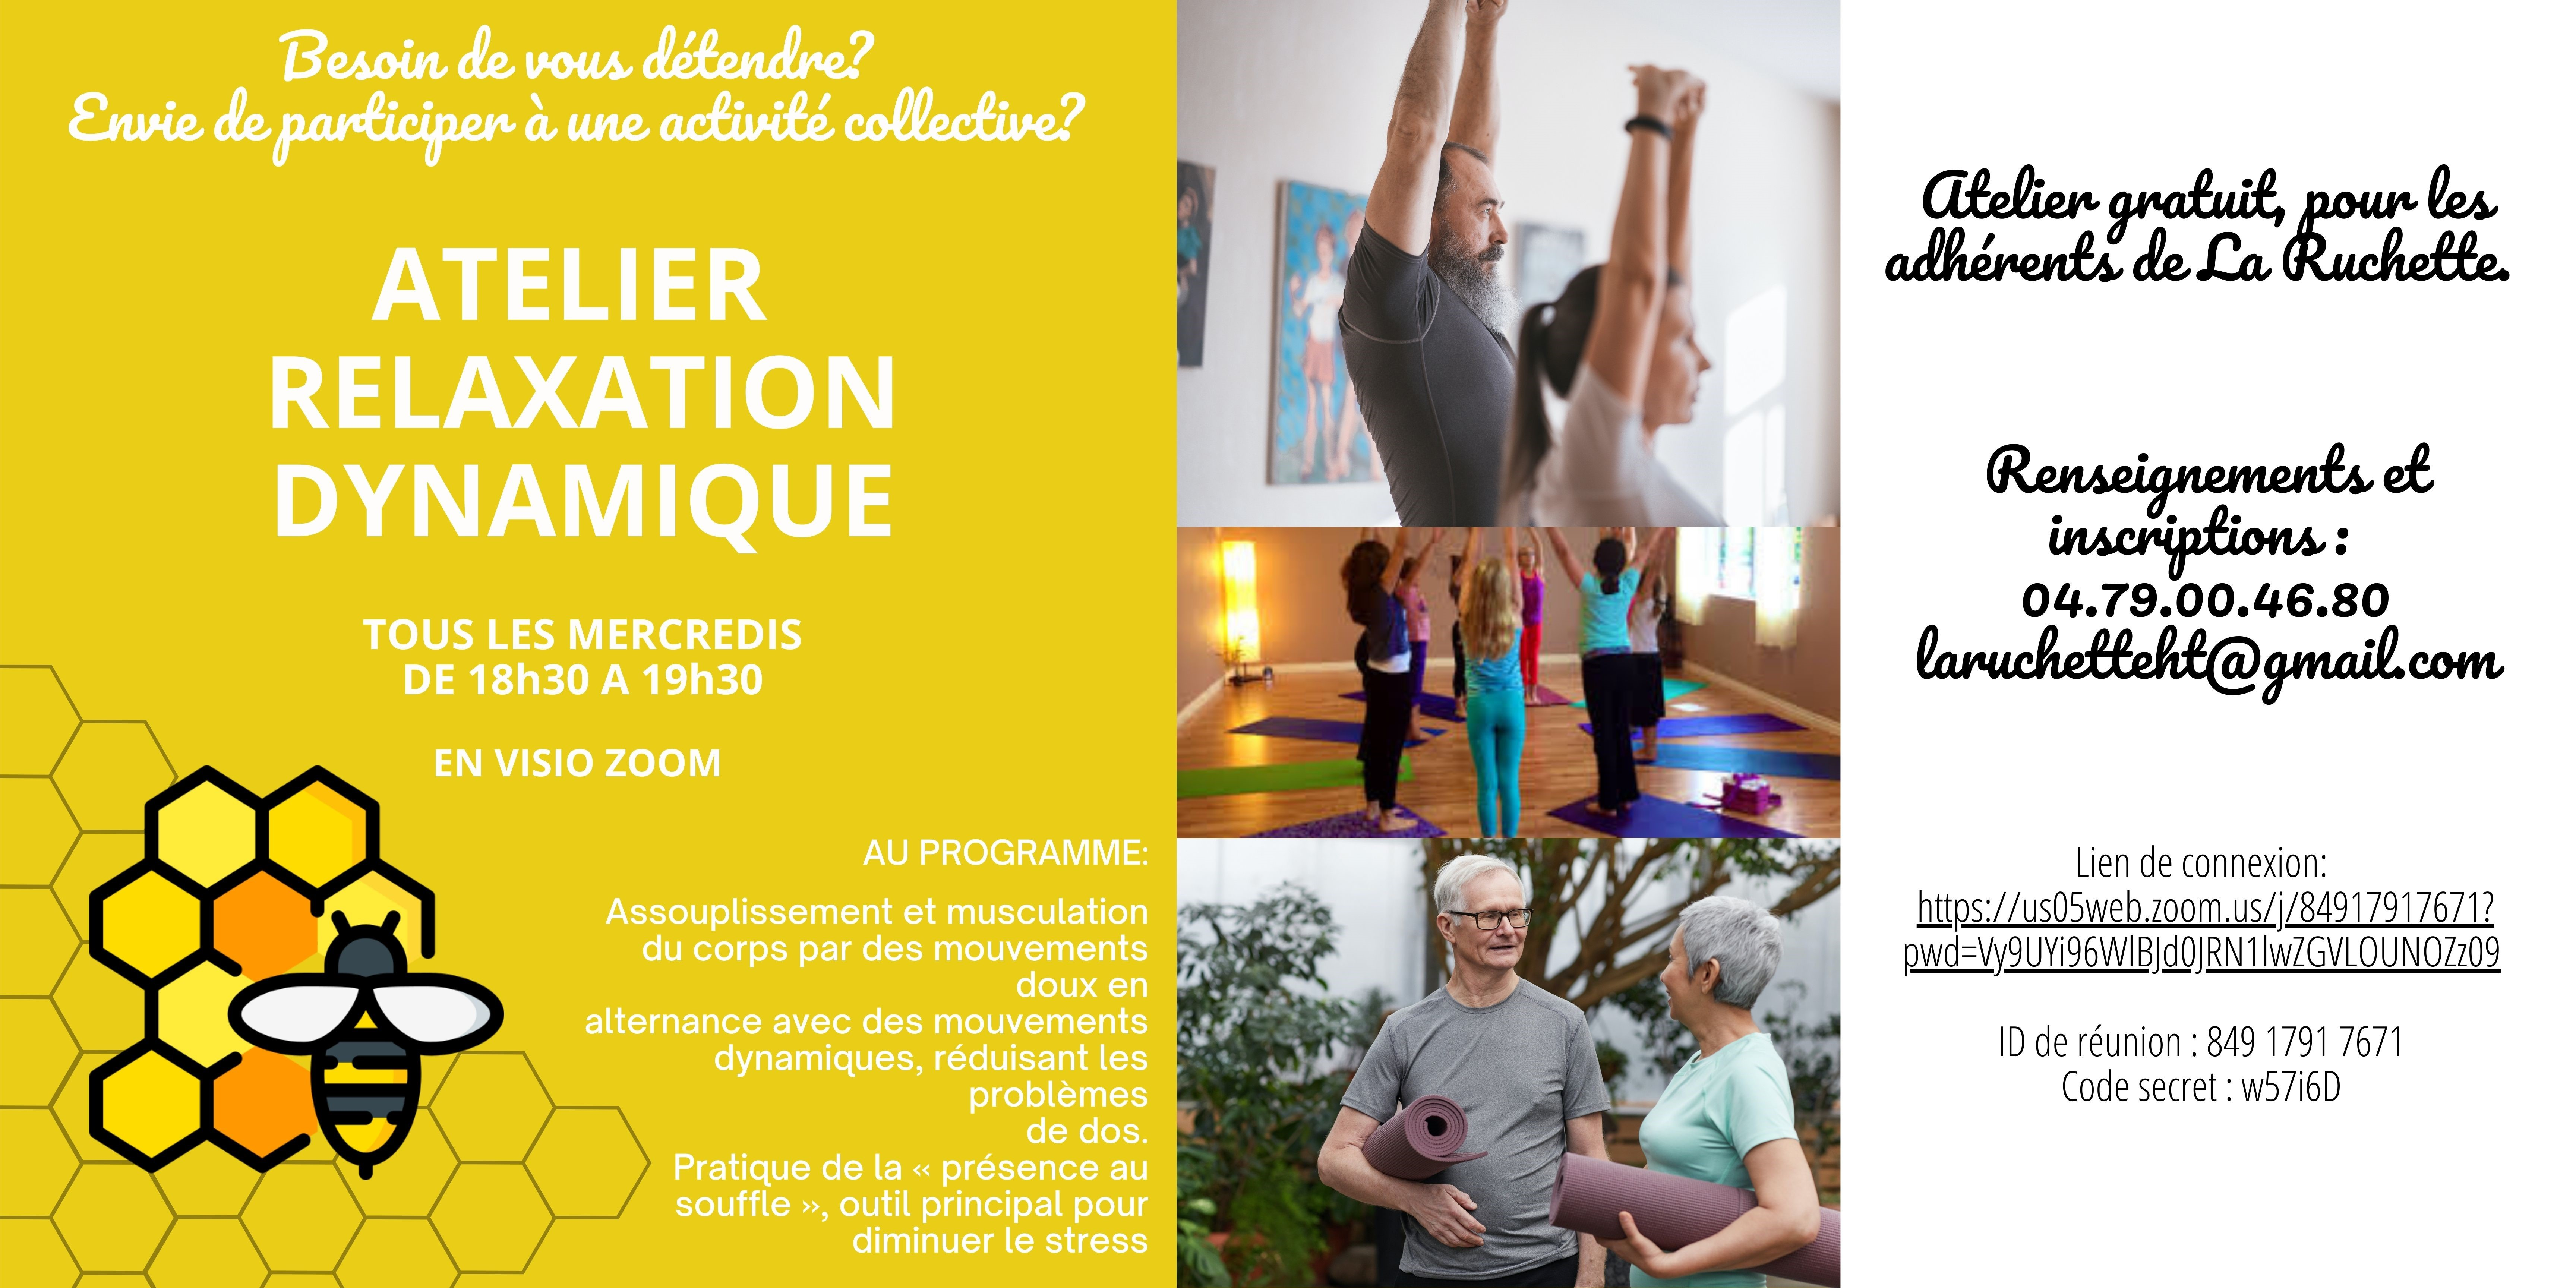 Atelier relaxation dynamique.jpg